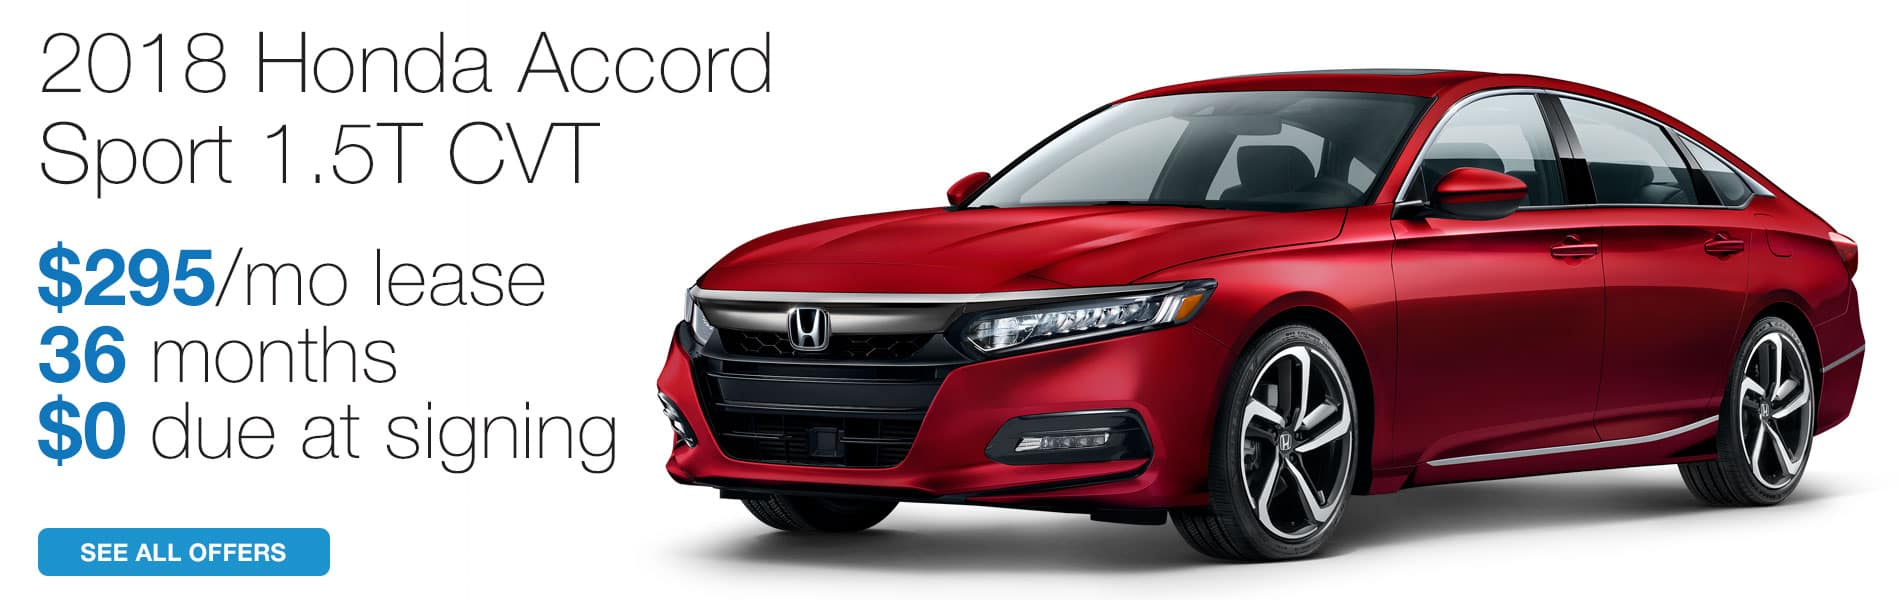 Beaverton Honda Family Run Dealer In Portland Oregon Accord Engine Parts Diagram Lease A 2018 Sport Cvt For 295 Per Month With 0 Due At